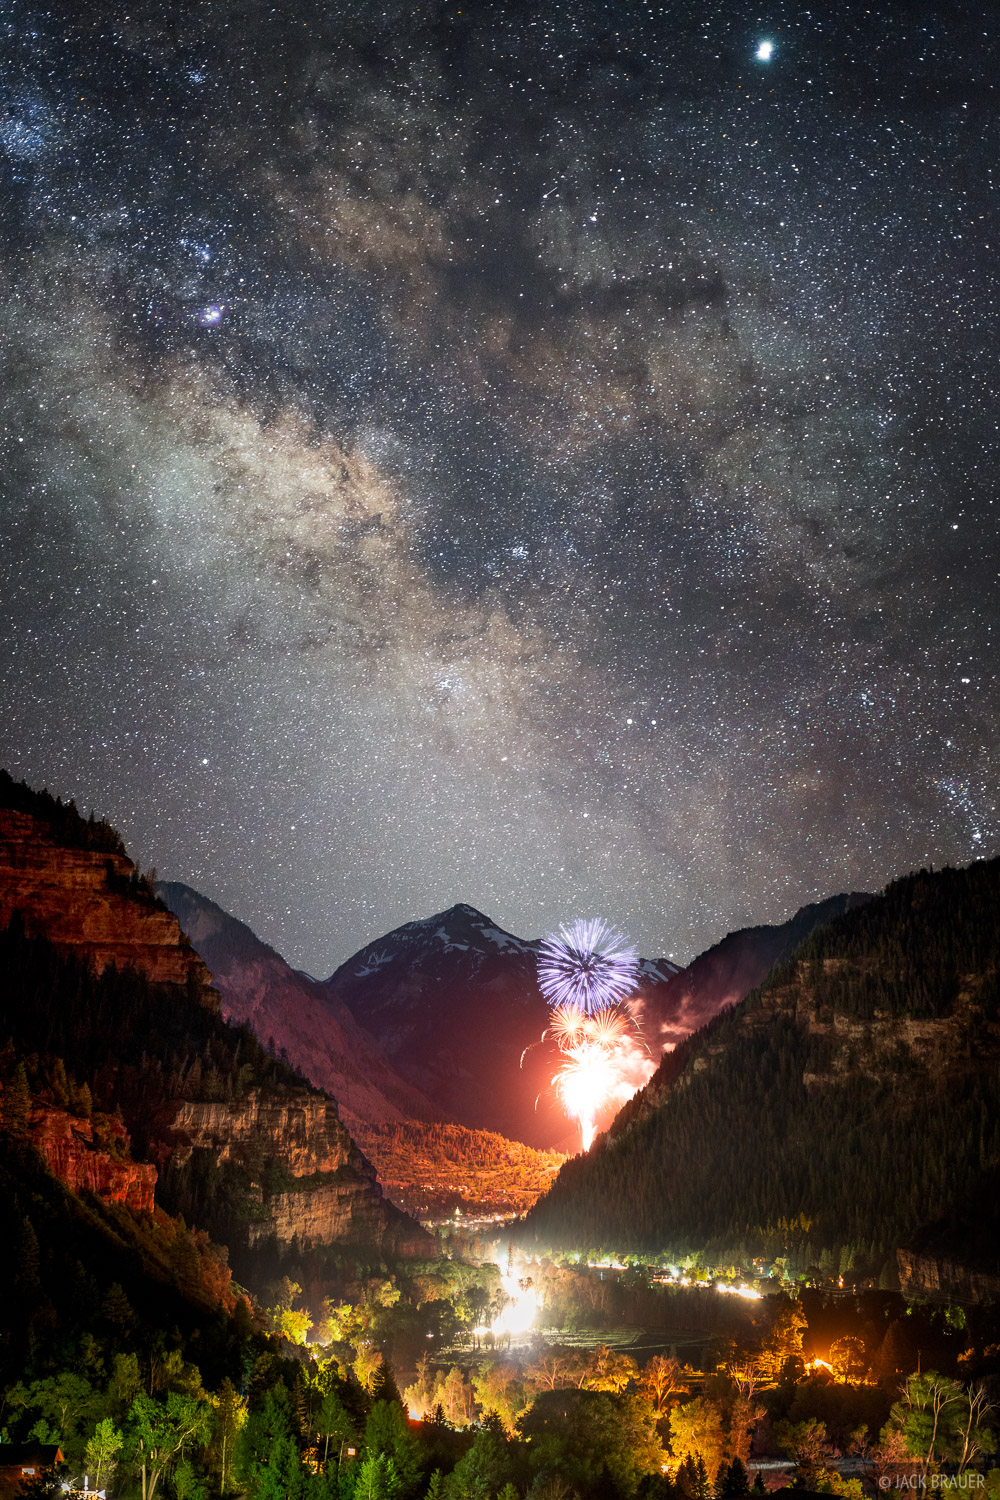 4th of July fireworks in Ouray, Colorado, with the Milky Way galaxy above. To create this photo I first photographed the fireworks...